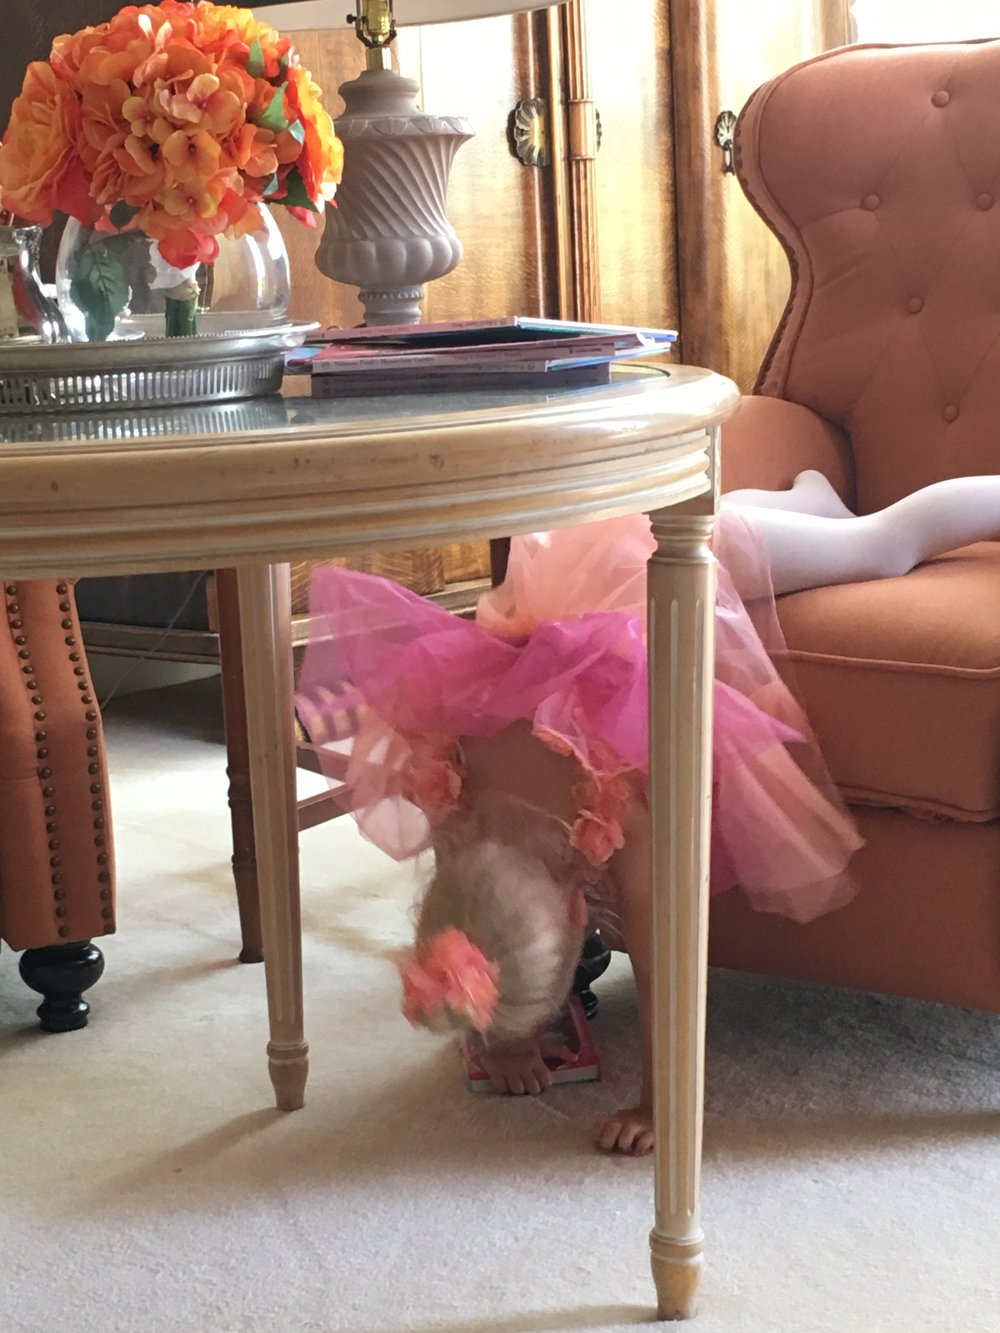 Oops, the book dropped! Can you guess her princess thoughts now?